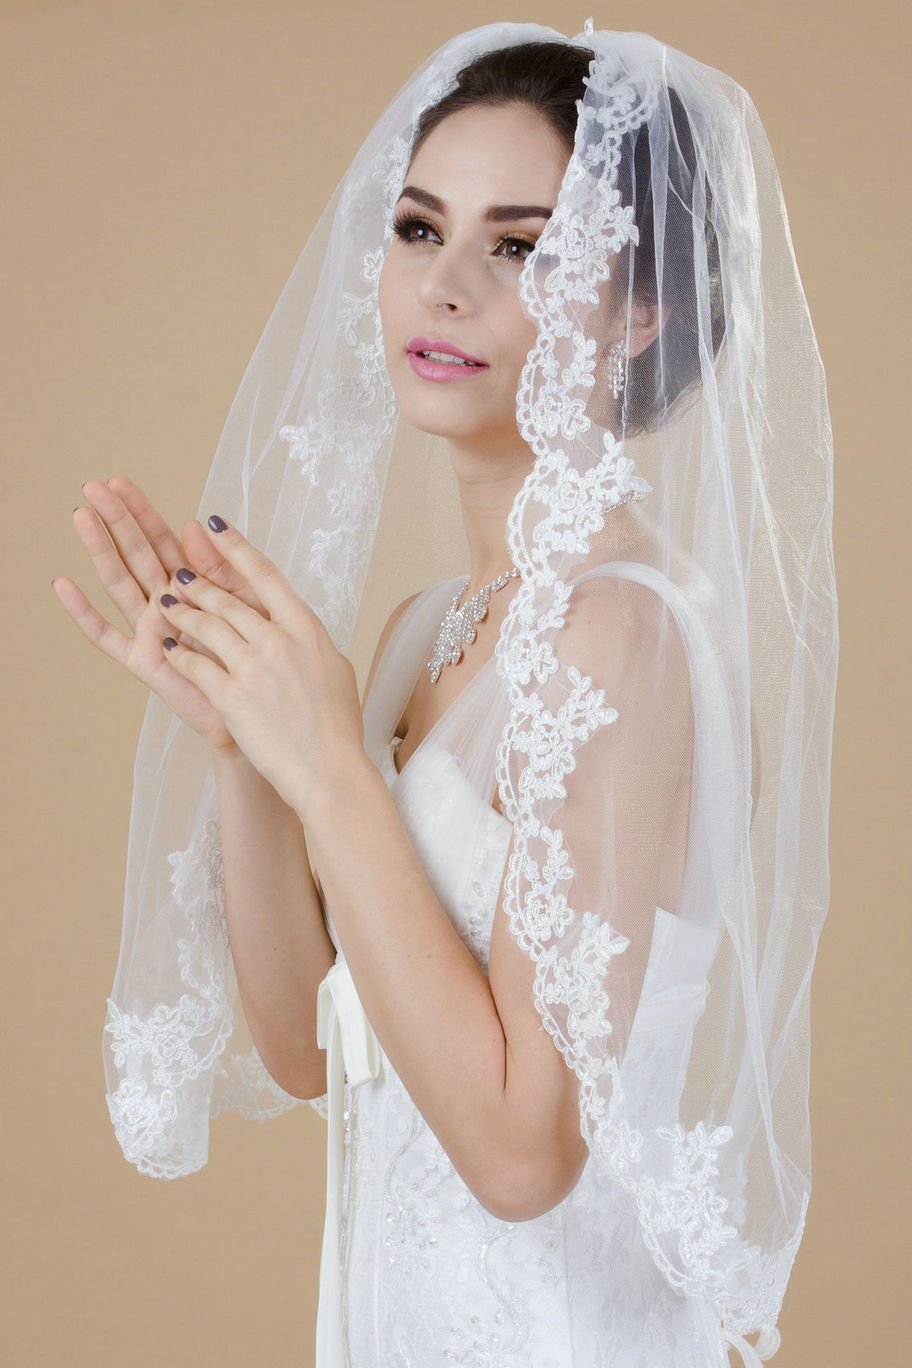 Buy Venus Bridal Wedding Veil for Bride with Lace Edge and Comb Attached  (Ivory, Plastic comb) Online at Low Prices in India - Amazon.in